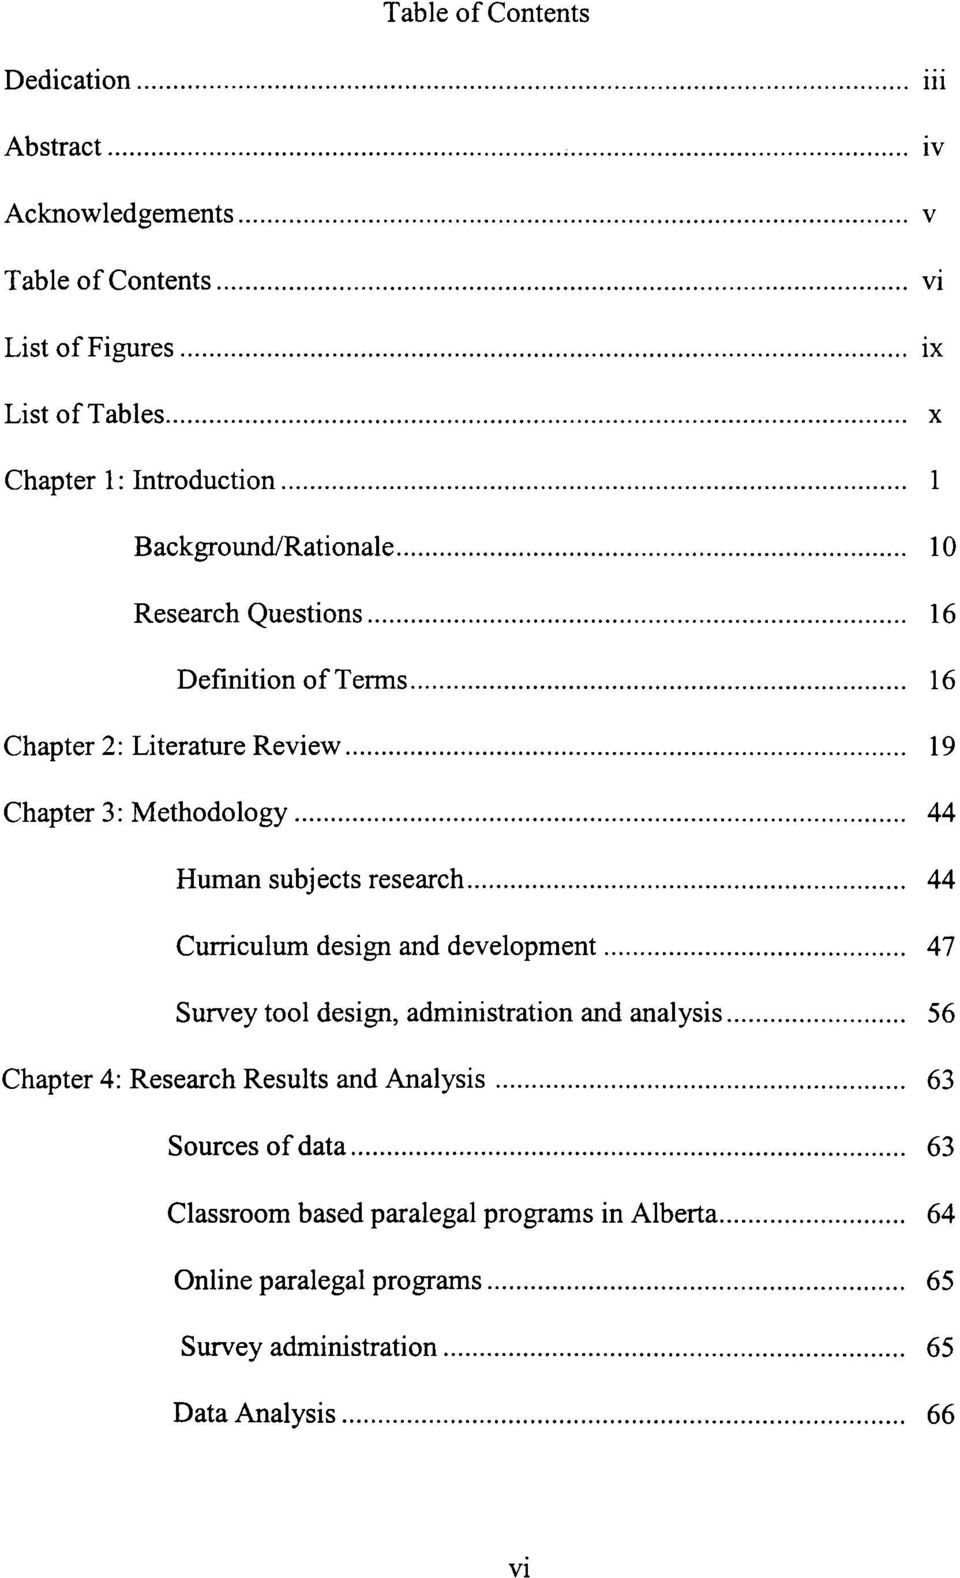 Human subjects research 44 Curriculum design and development 47 Survey tool design, administration and analysis 56 Chapter 4: Research Results